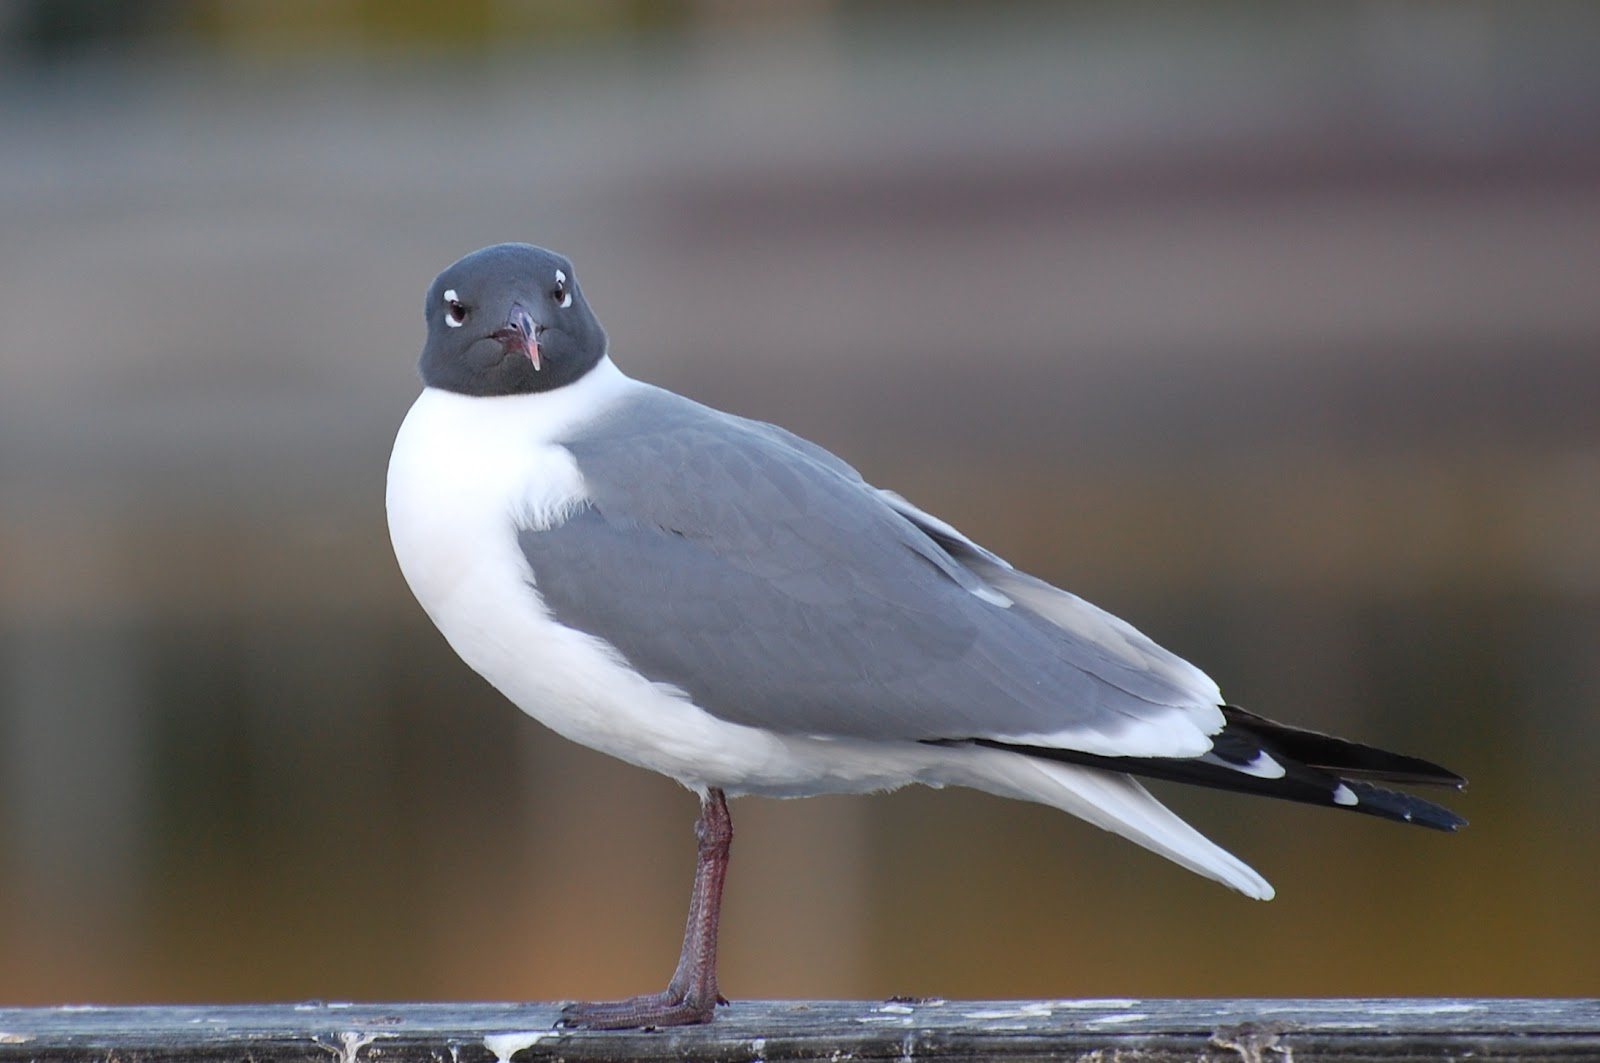 Laughing Gull Season is Almost Over